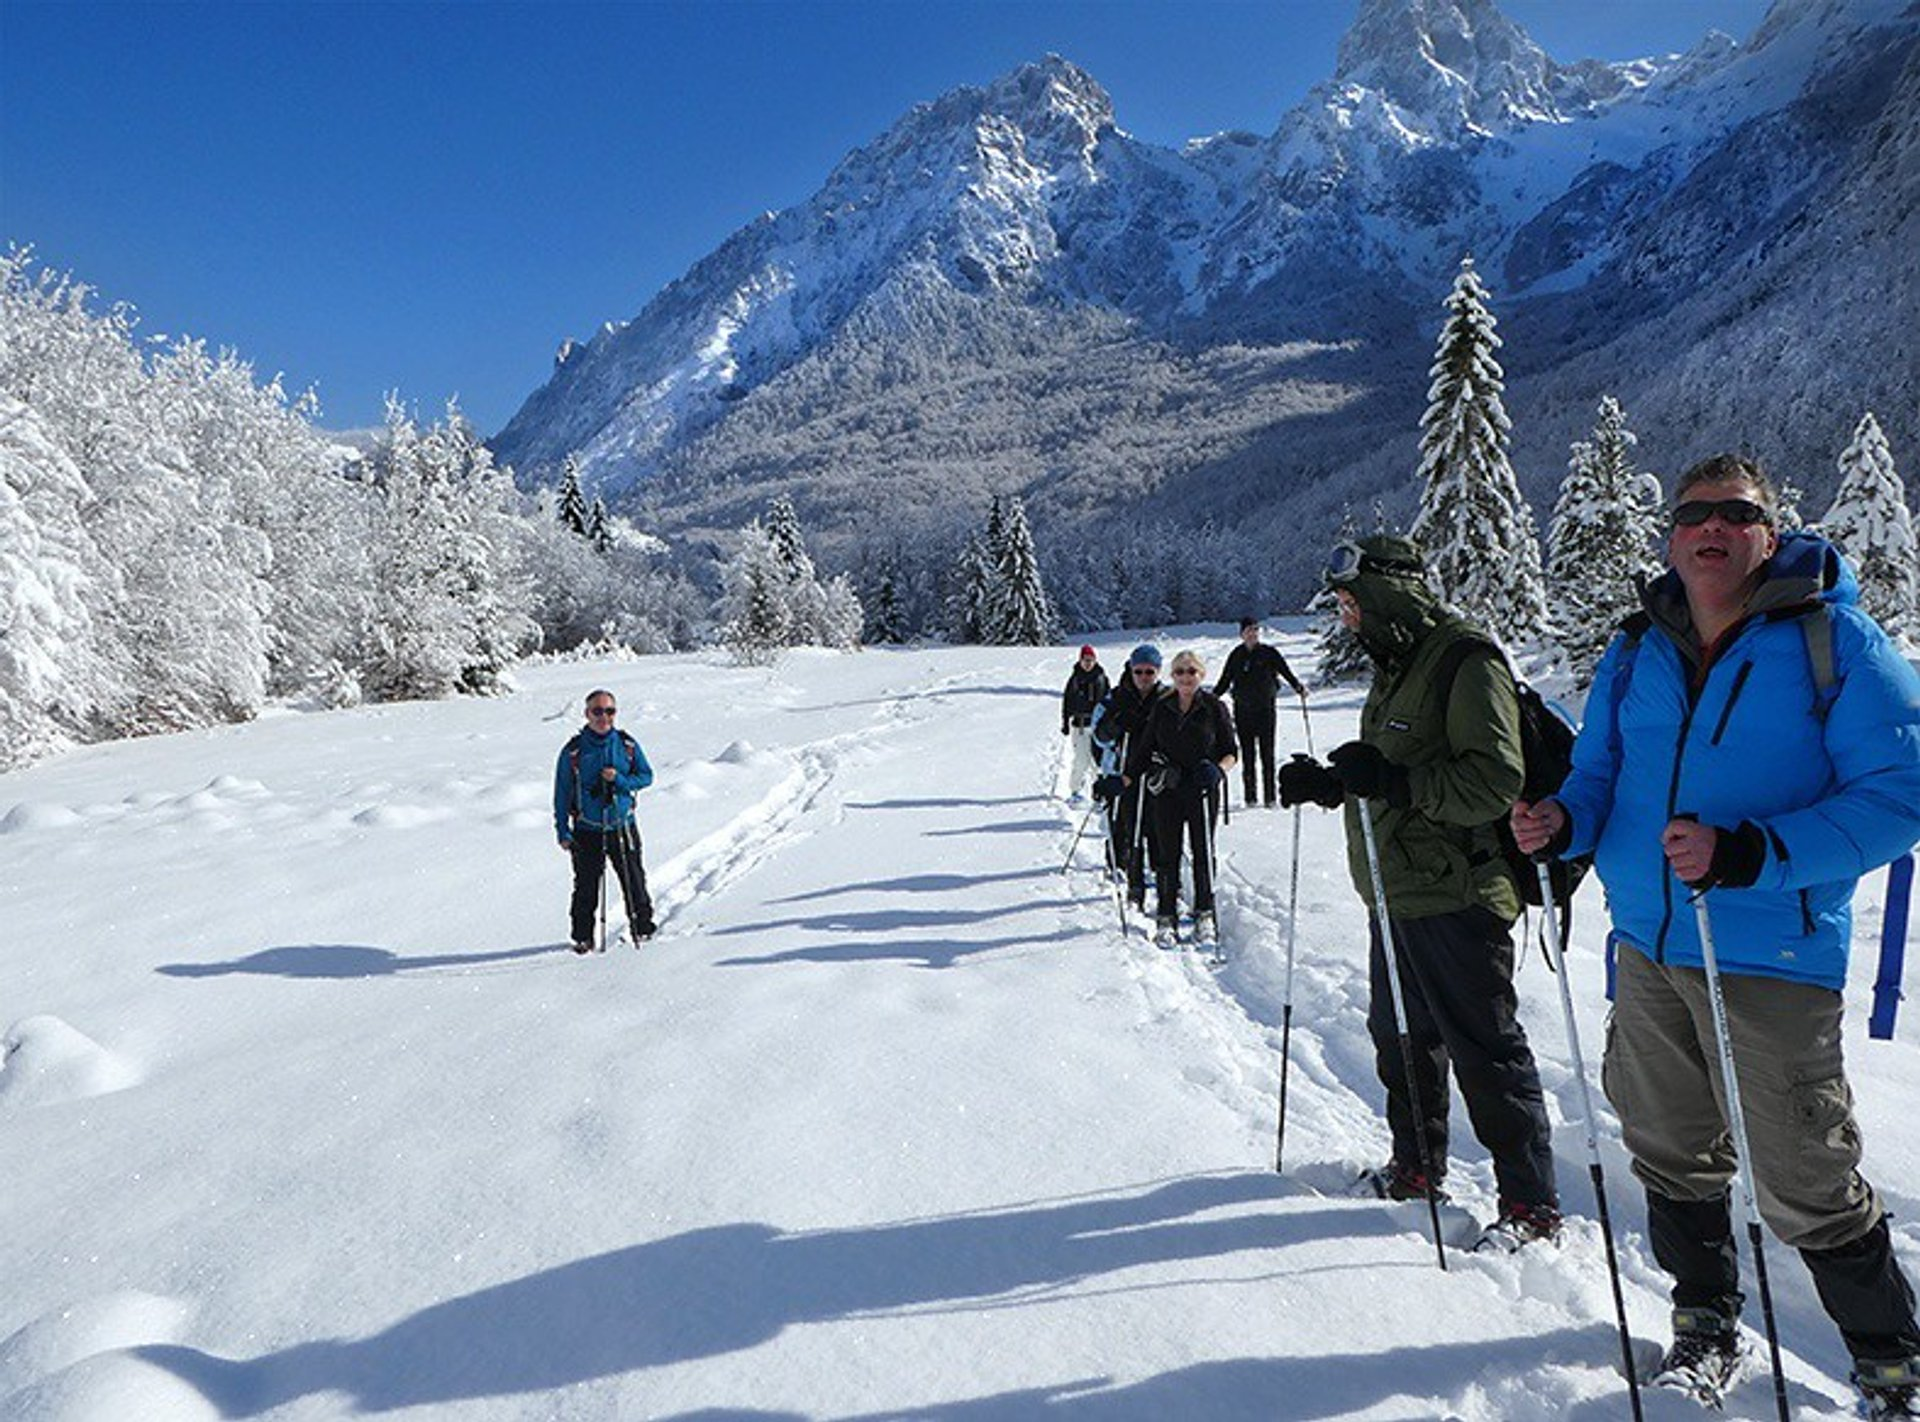 Snowshoeing in Albania 2019 - Best Time